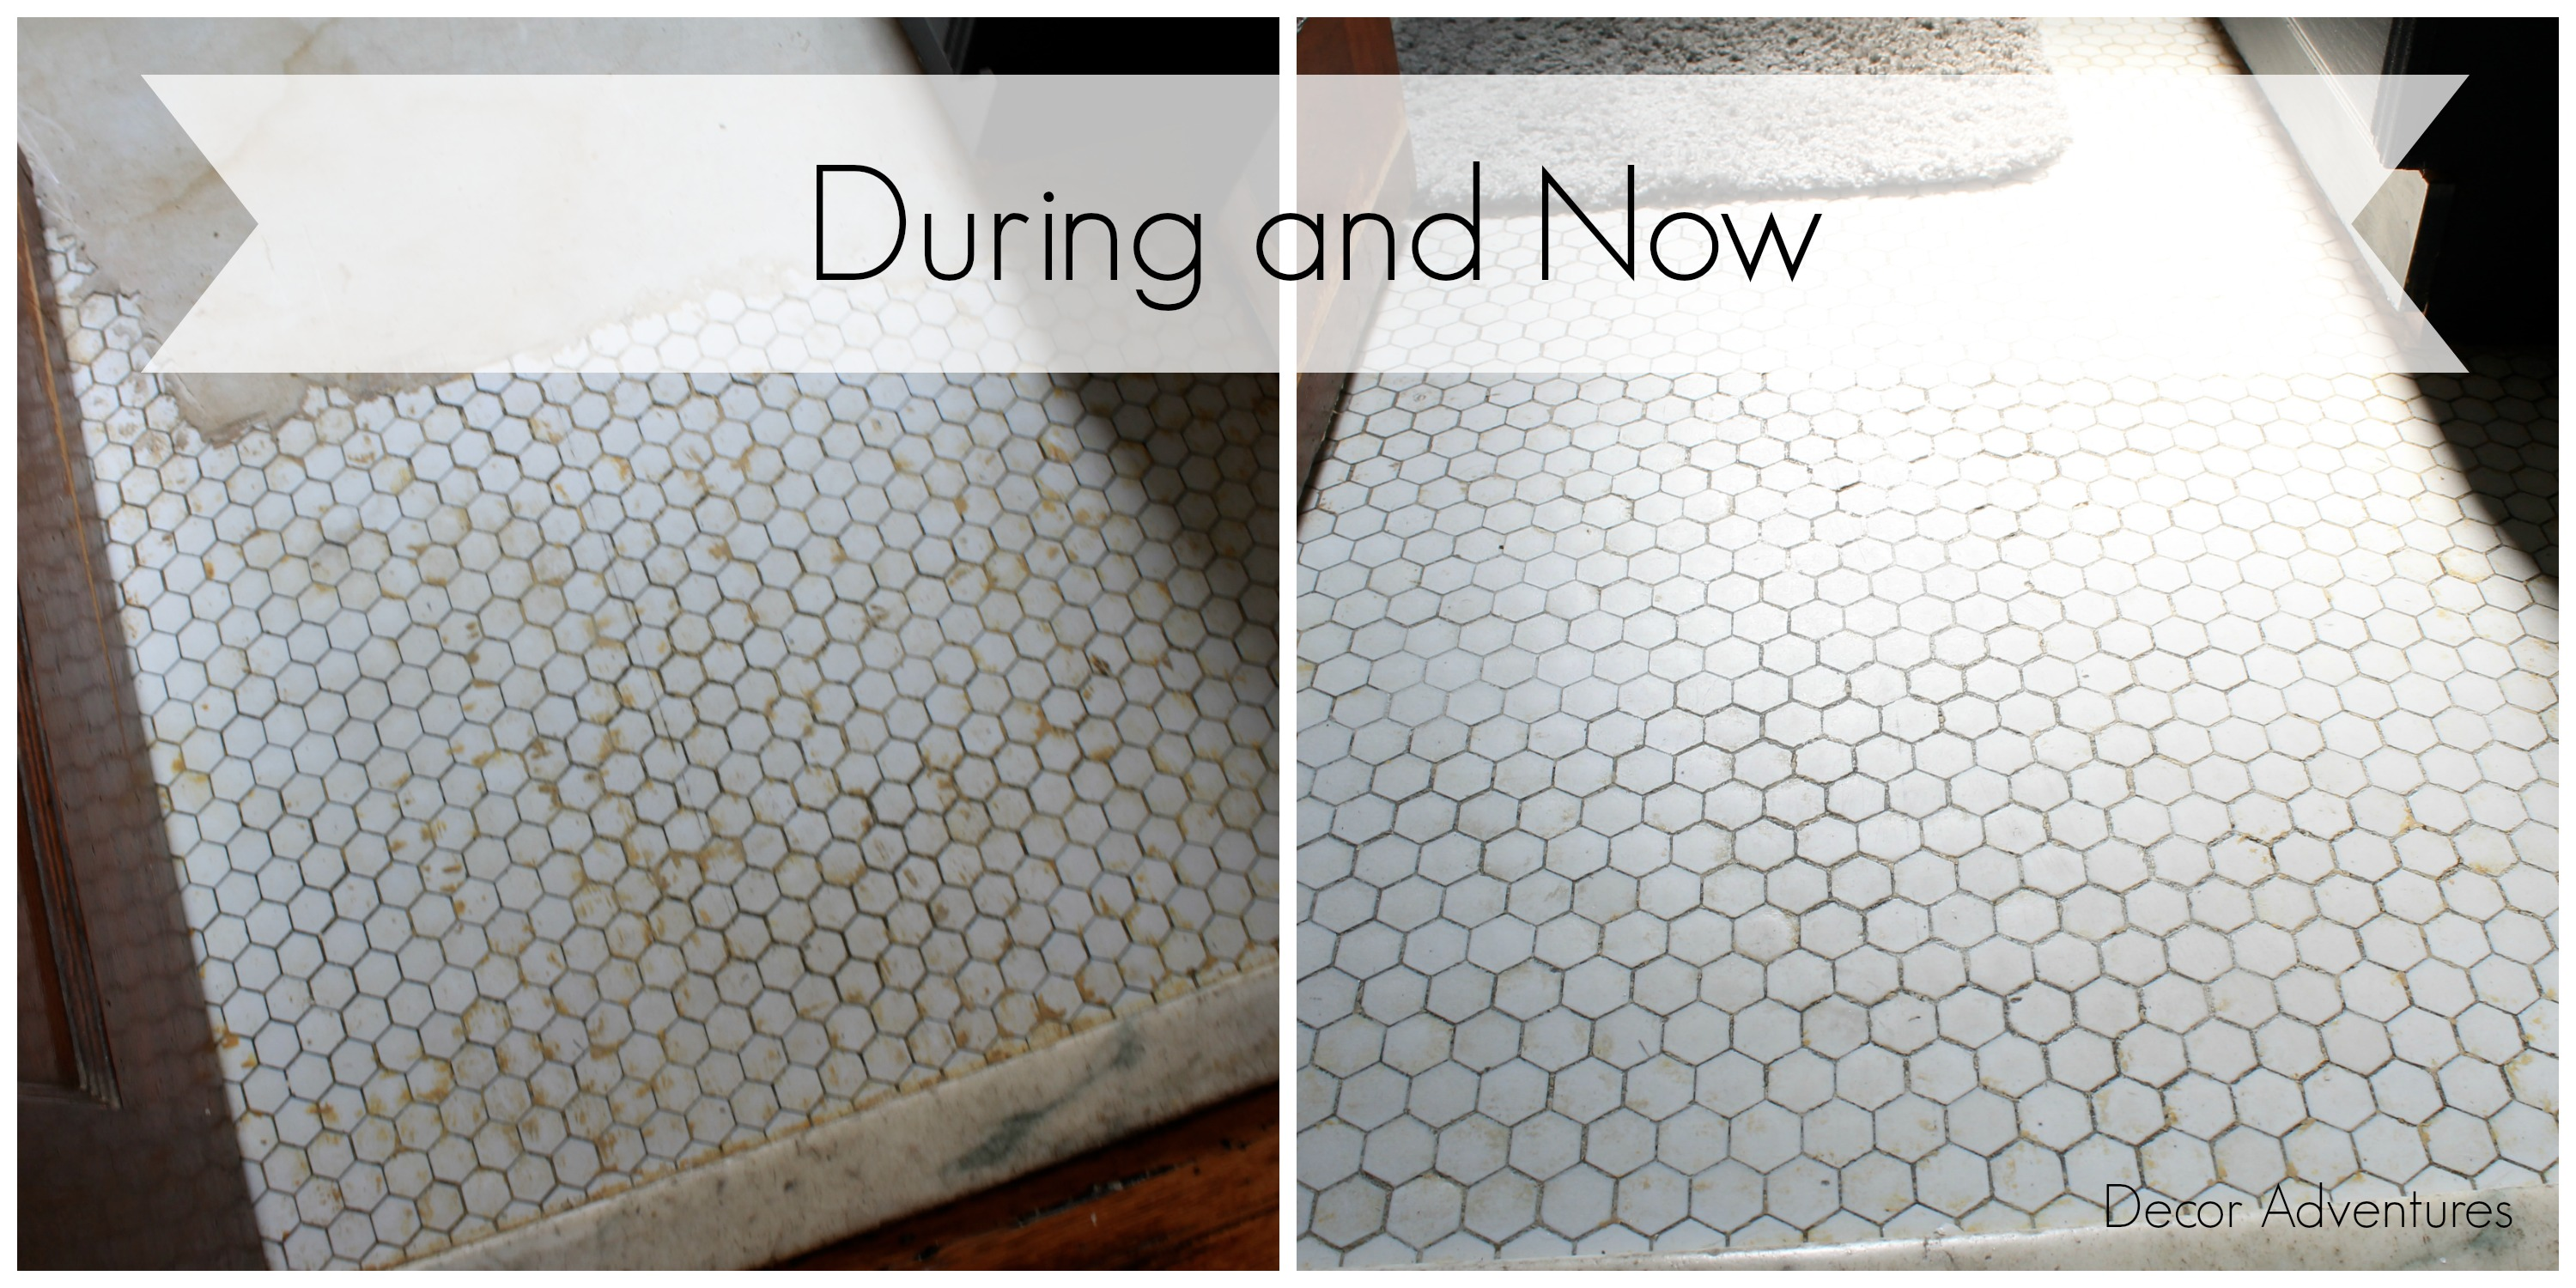 Uncovering a Hex Tile Floor Before + After » Decor Adventures on large hexagon tile, white bathroom hexagon tile, hexagon tile patterns, hexagon bathroom window, hexagon ceramic tile, hexagon bathroom tile design, white hexagon mosaic floor tile, hexagon flooring tile, hexagon wall tile, hexagon porcelain floor tile, black and white moroccan floor tile, wood kitchen floor tile, grey hexagon tile, hexagon kitchen backsplash tile, hexagon bathroom carpet, hexagon bathroom cabinets, hexagon tile vintage, hexagon bathroom flooring, natural stone slate floor tile, hexagon tile tile,